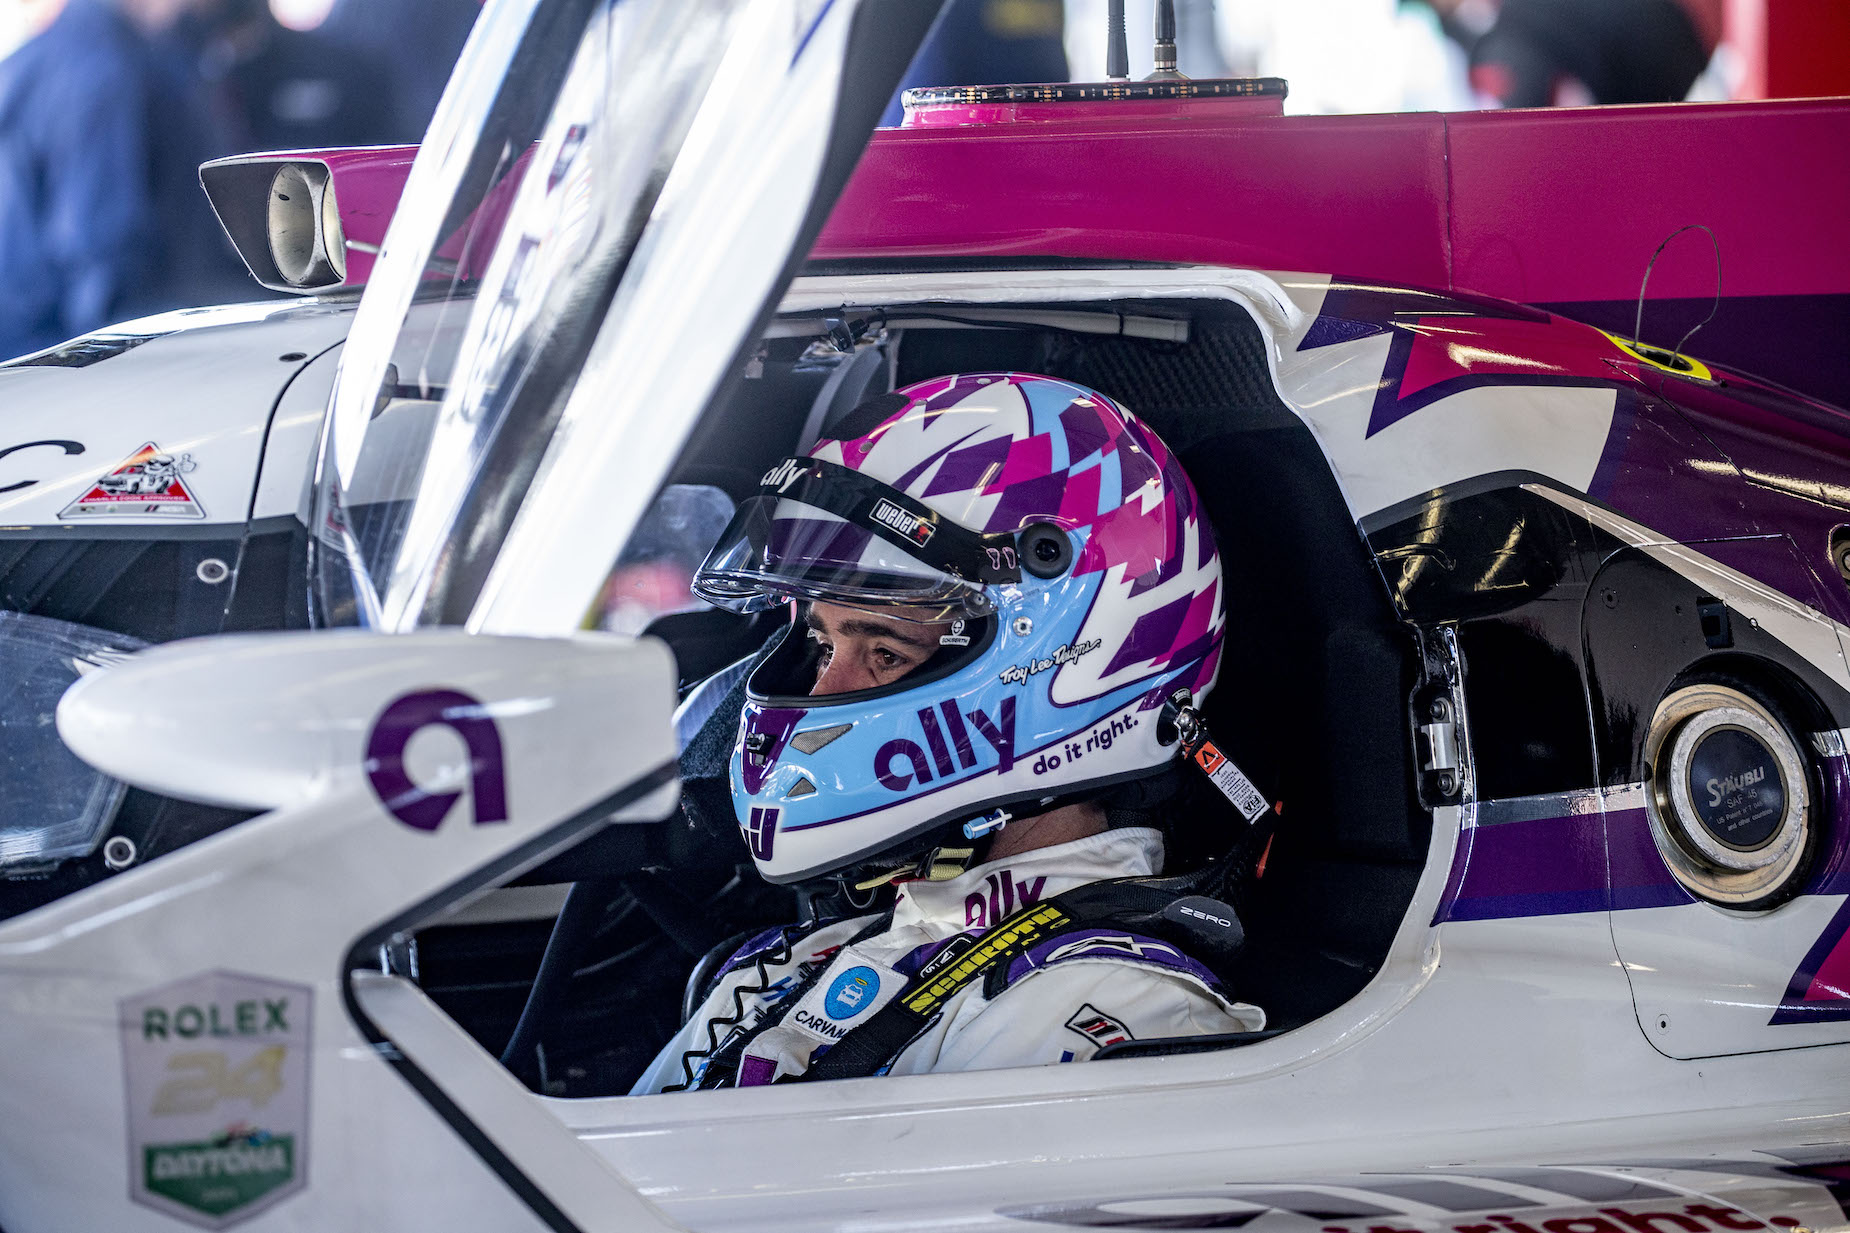 NASCAR legend Jimmie Johnson sits in his IndyCar in January 2021